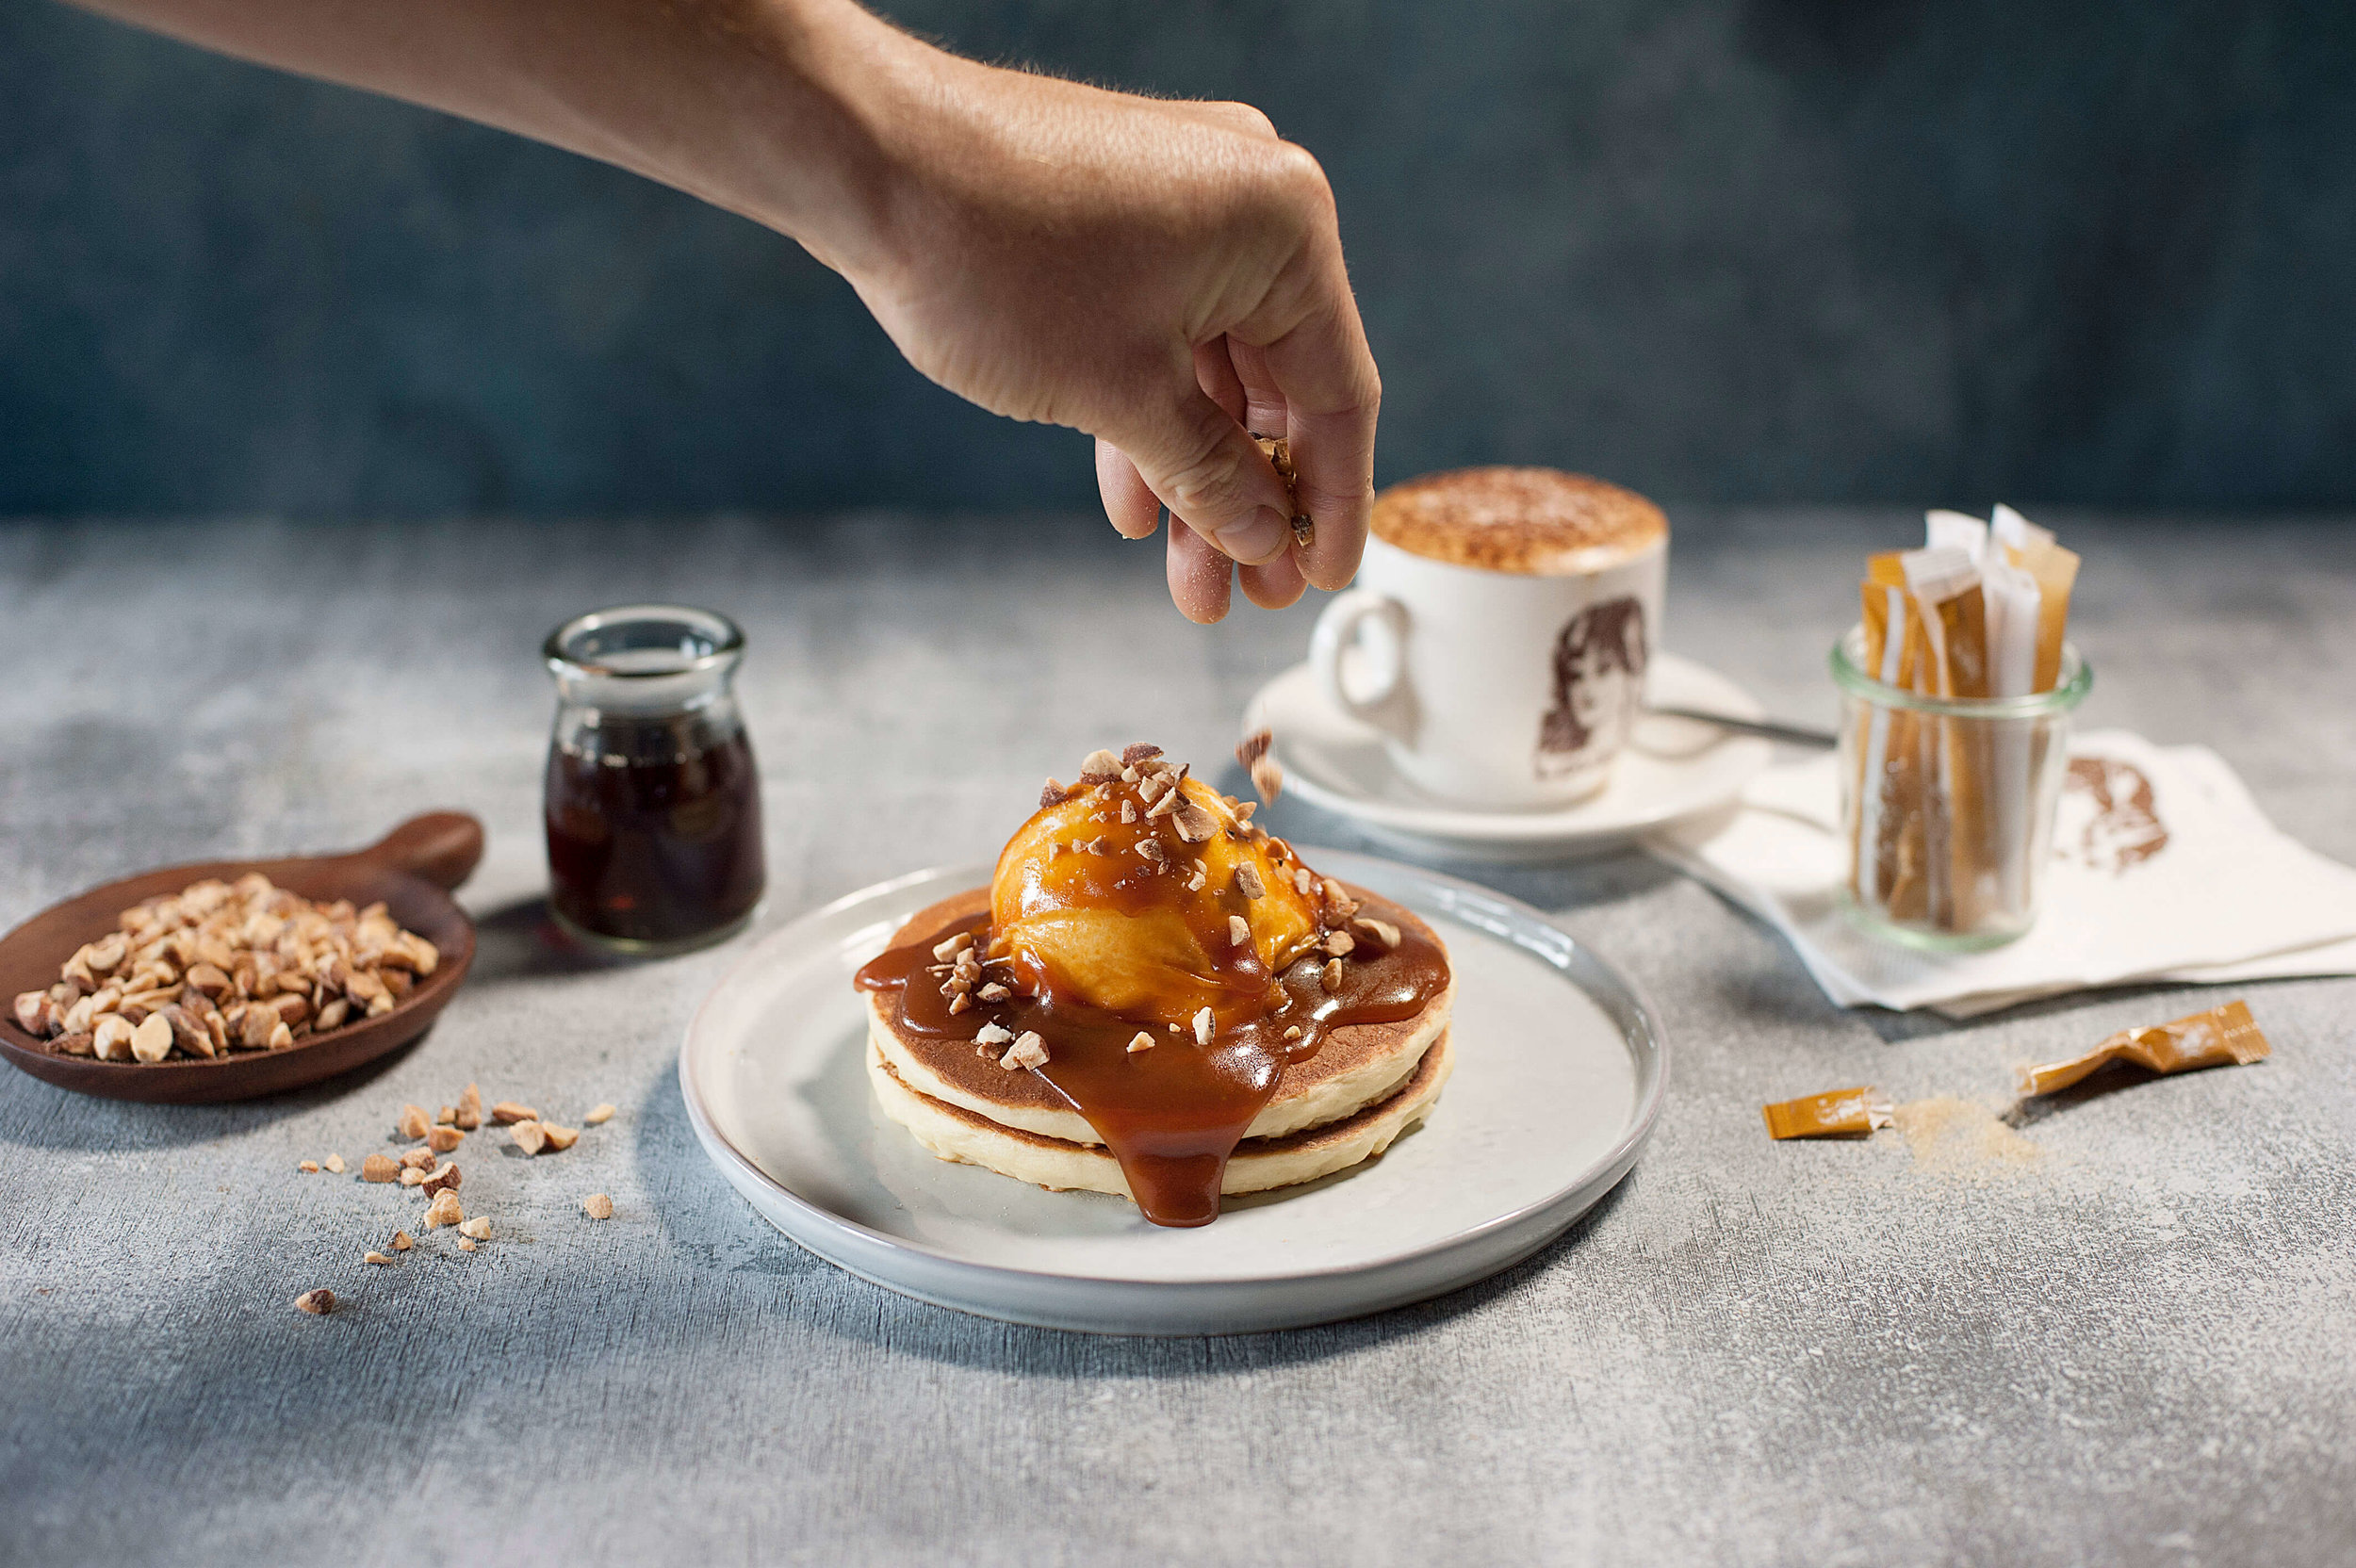 salted-caramel-pancake-parlour-pancake-almonds-nuts-coffee-sugar